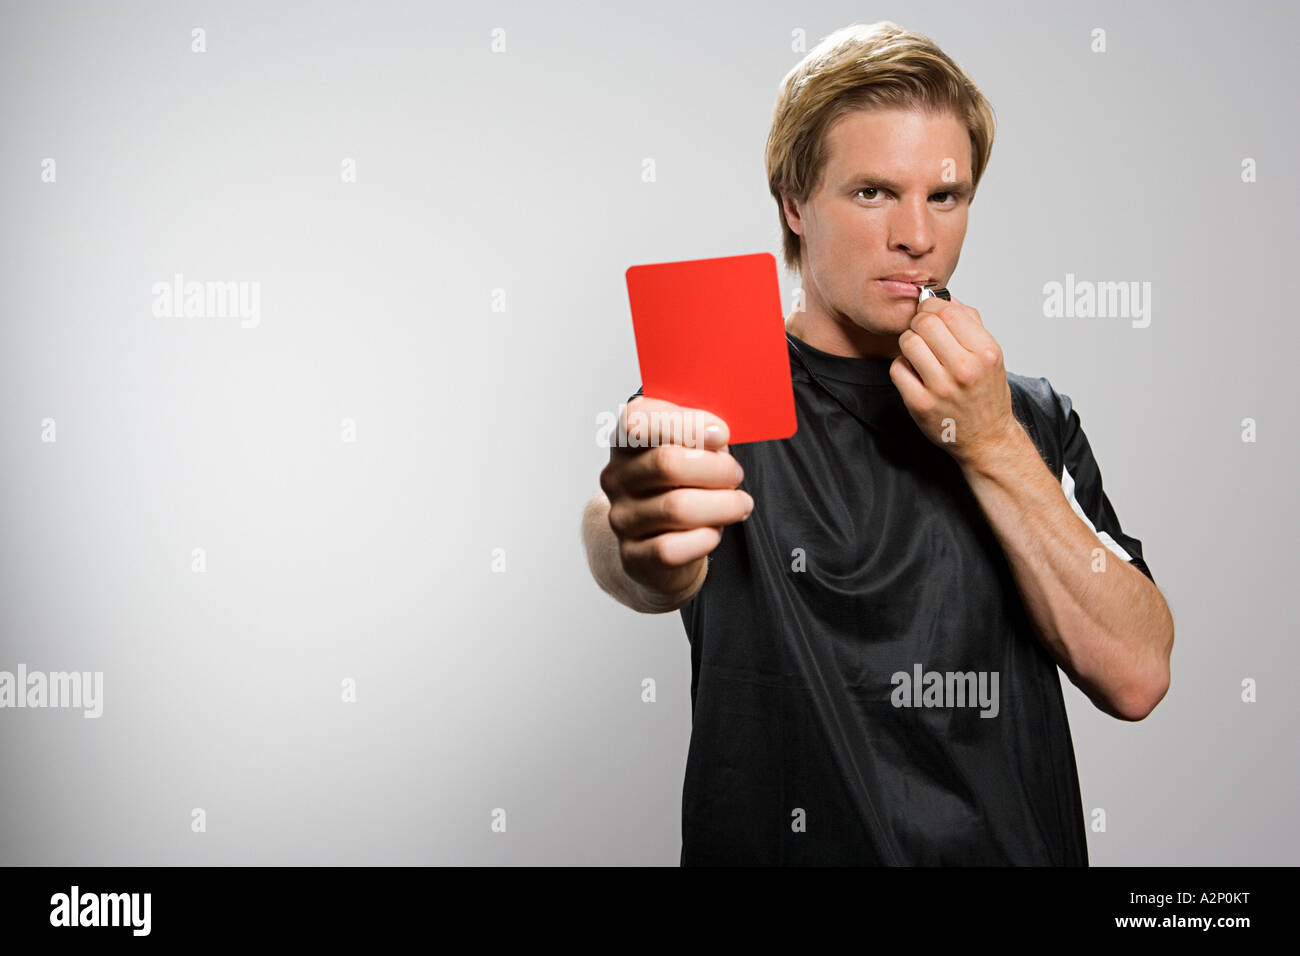 Referee holding red card and blowing whistle - Stock Image